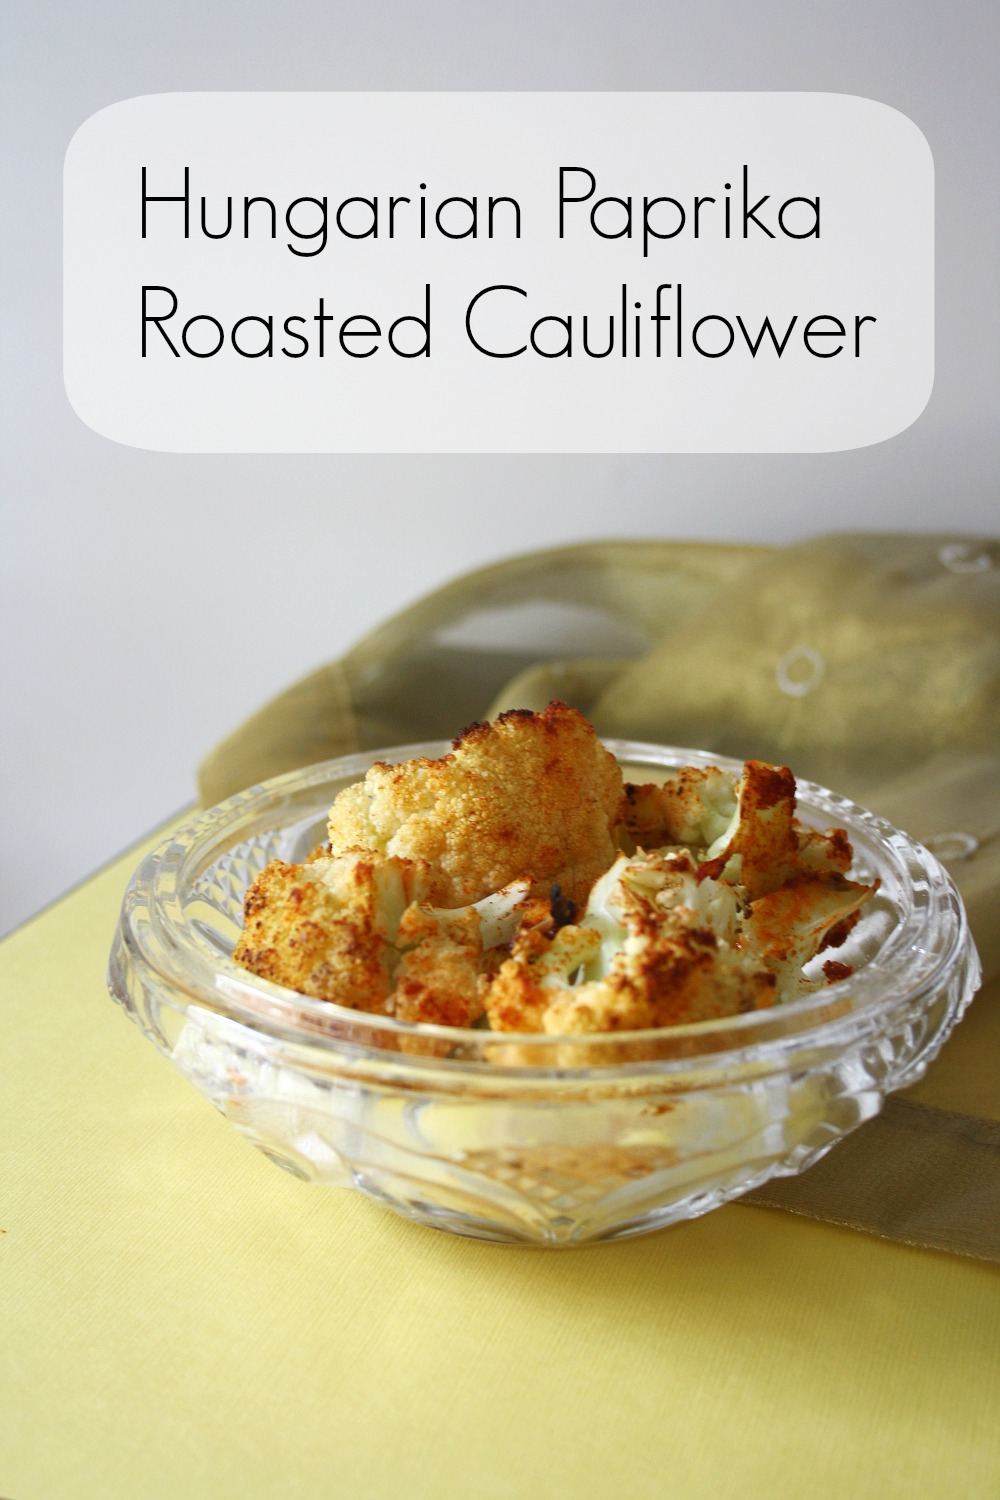 hungarian-paprika-roasted-cauliflower-cover